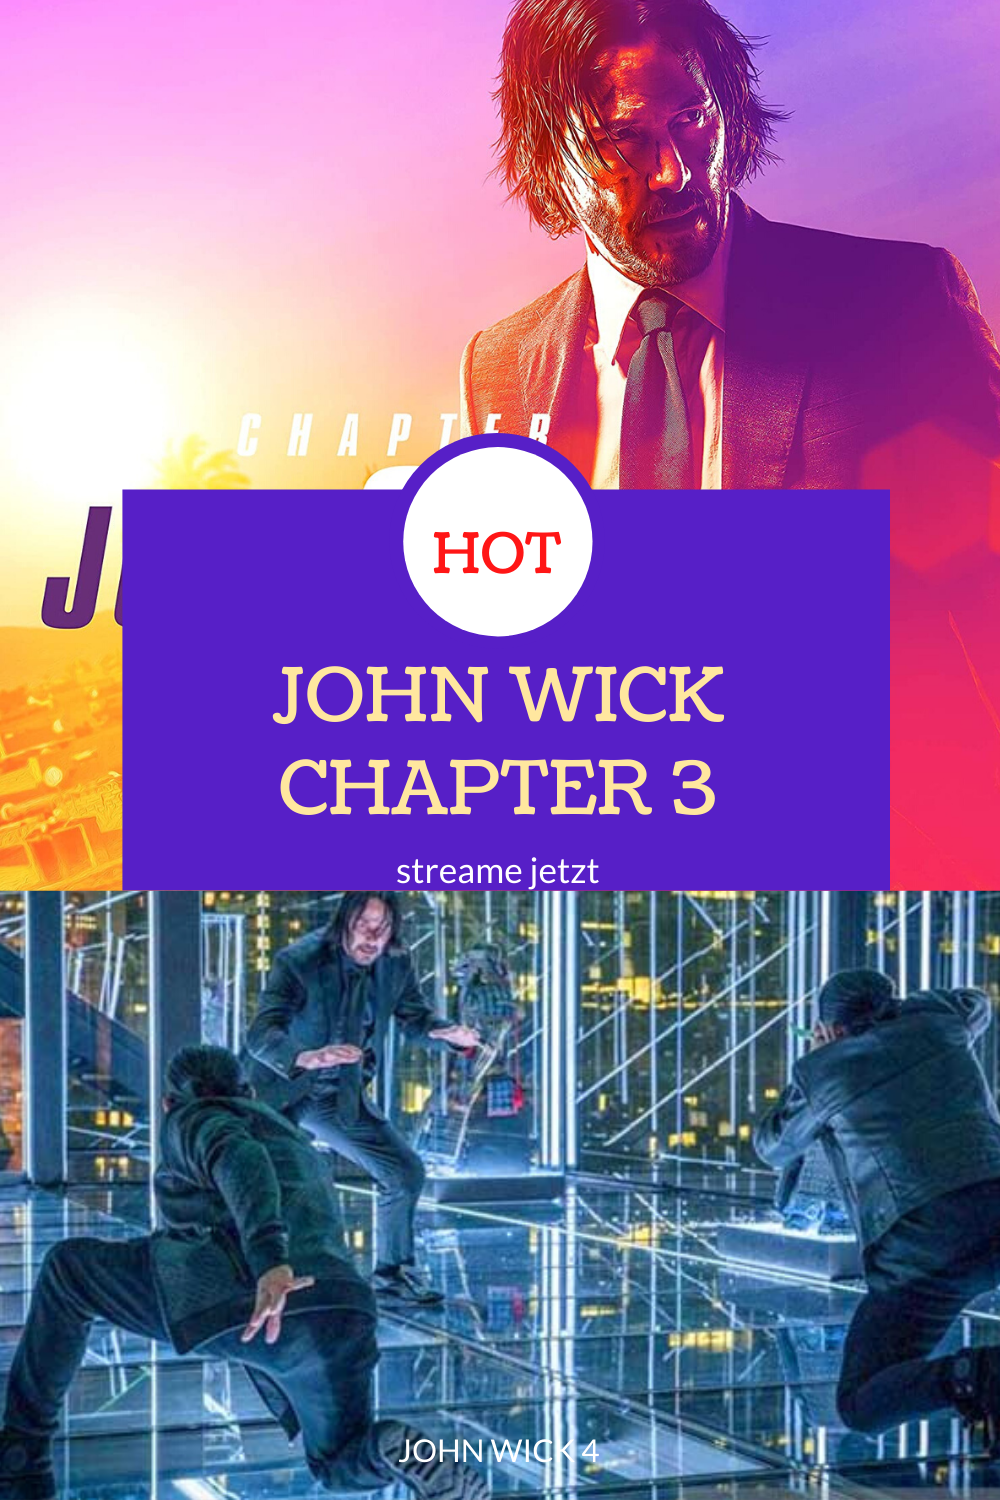 John Wick 3 Streaming Vf Film Complet Gratuit : streaming, complet, gratuit, Regarder, Parabellum, Streaming, Action, Movies,, Adventure, Movies, Online